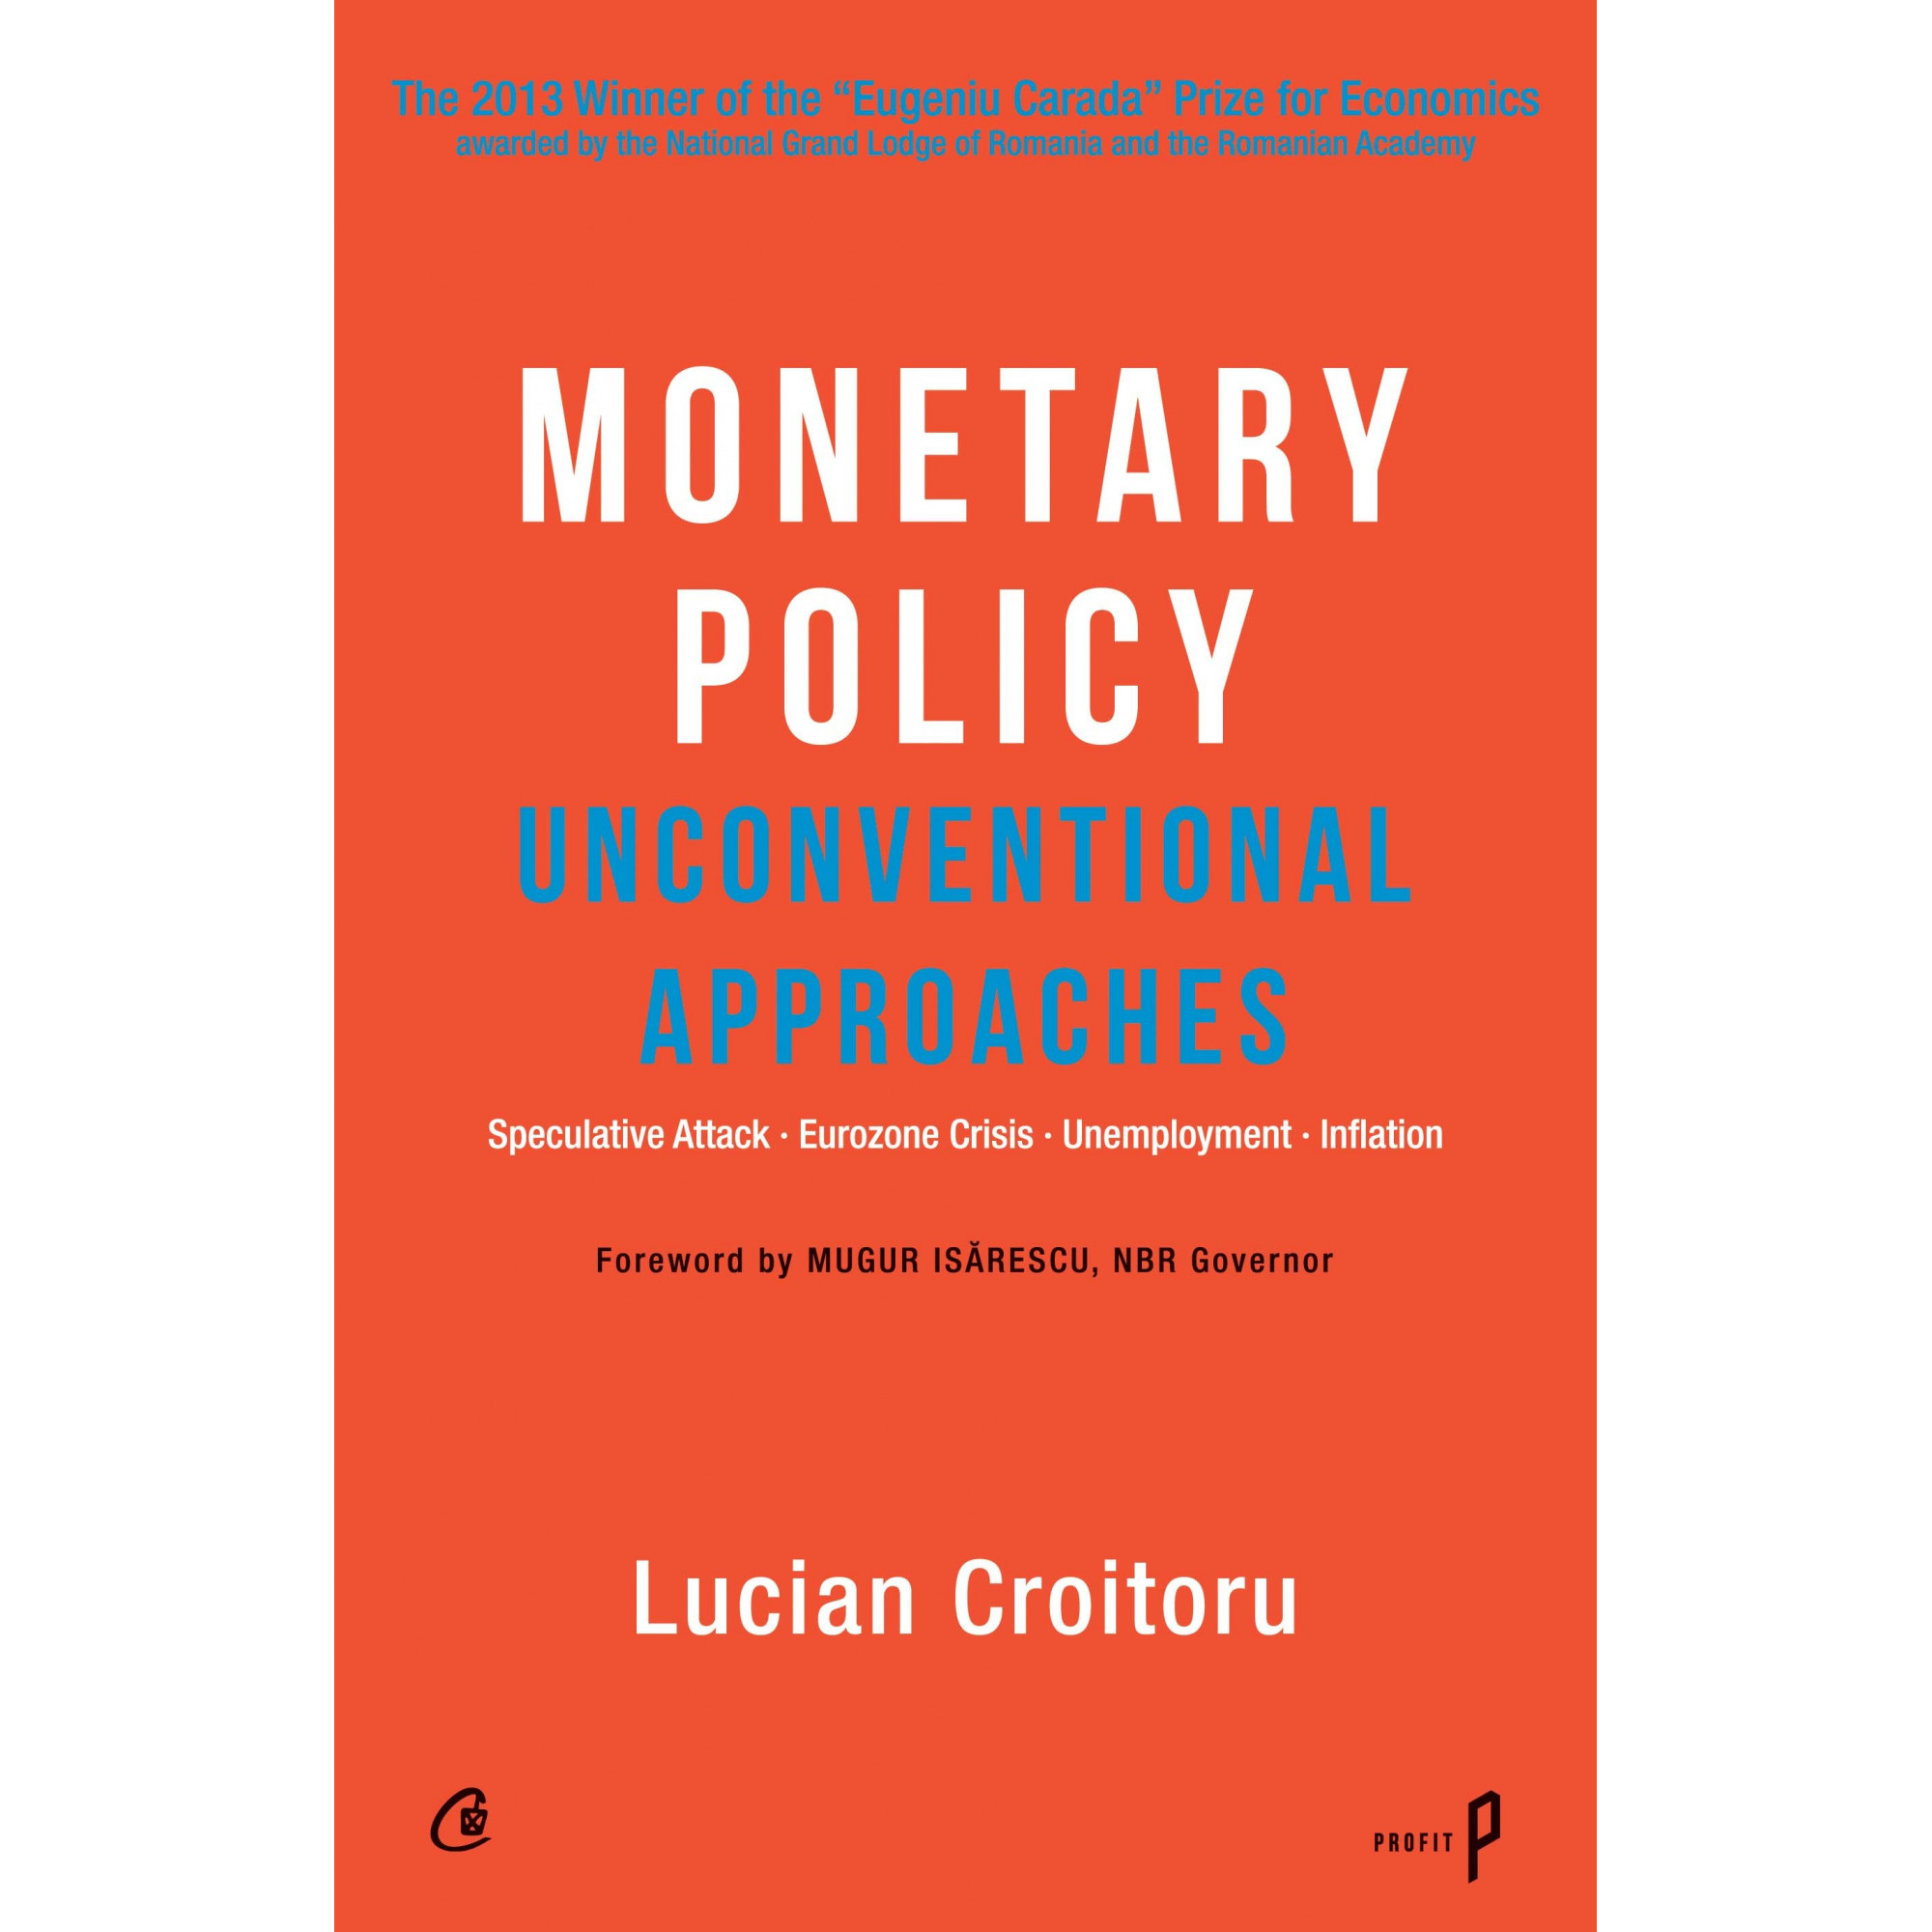 Monetary Policy. Unconventional Approaches; Lucian Croitoru